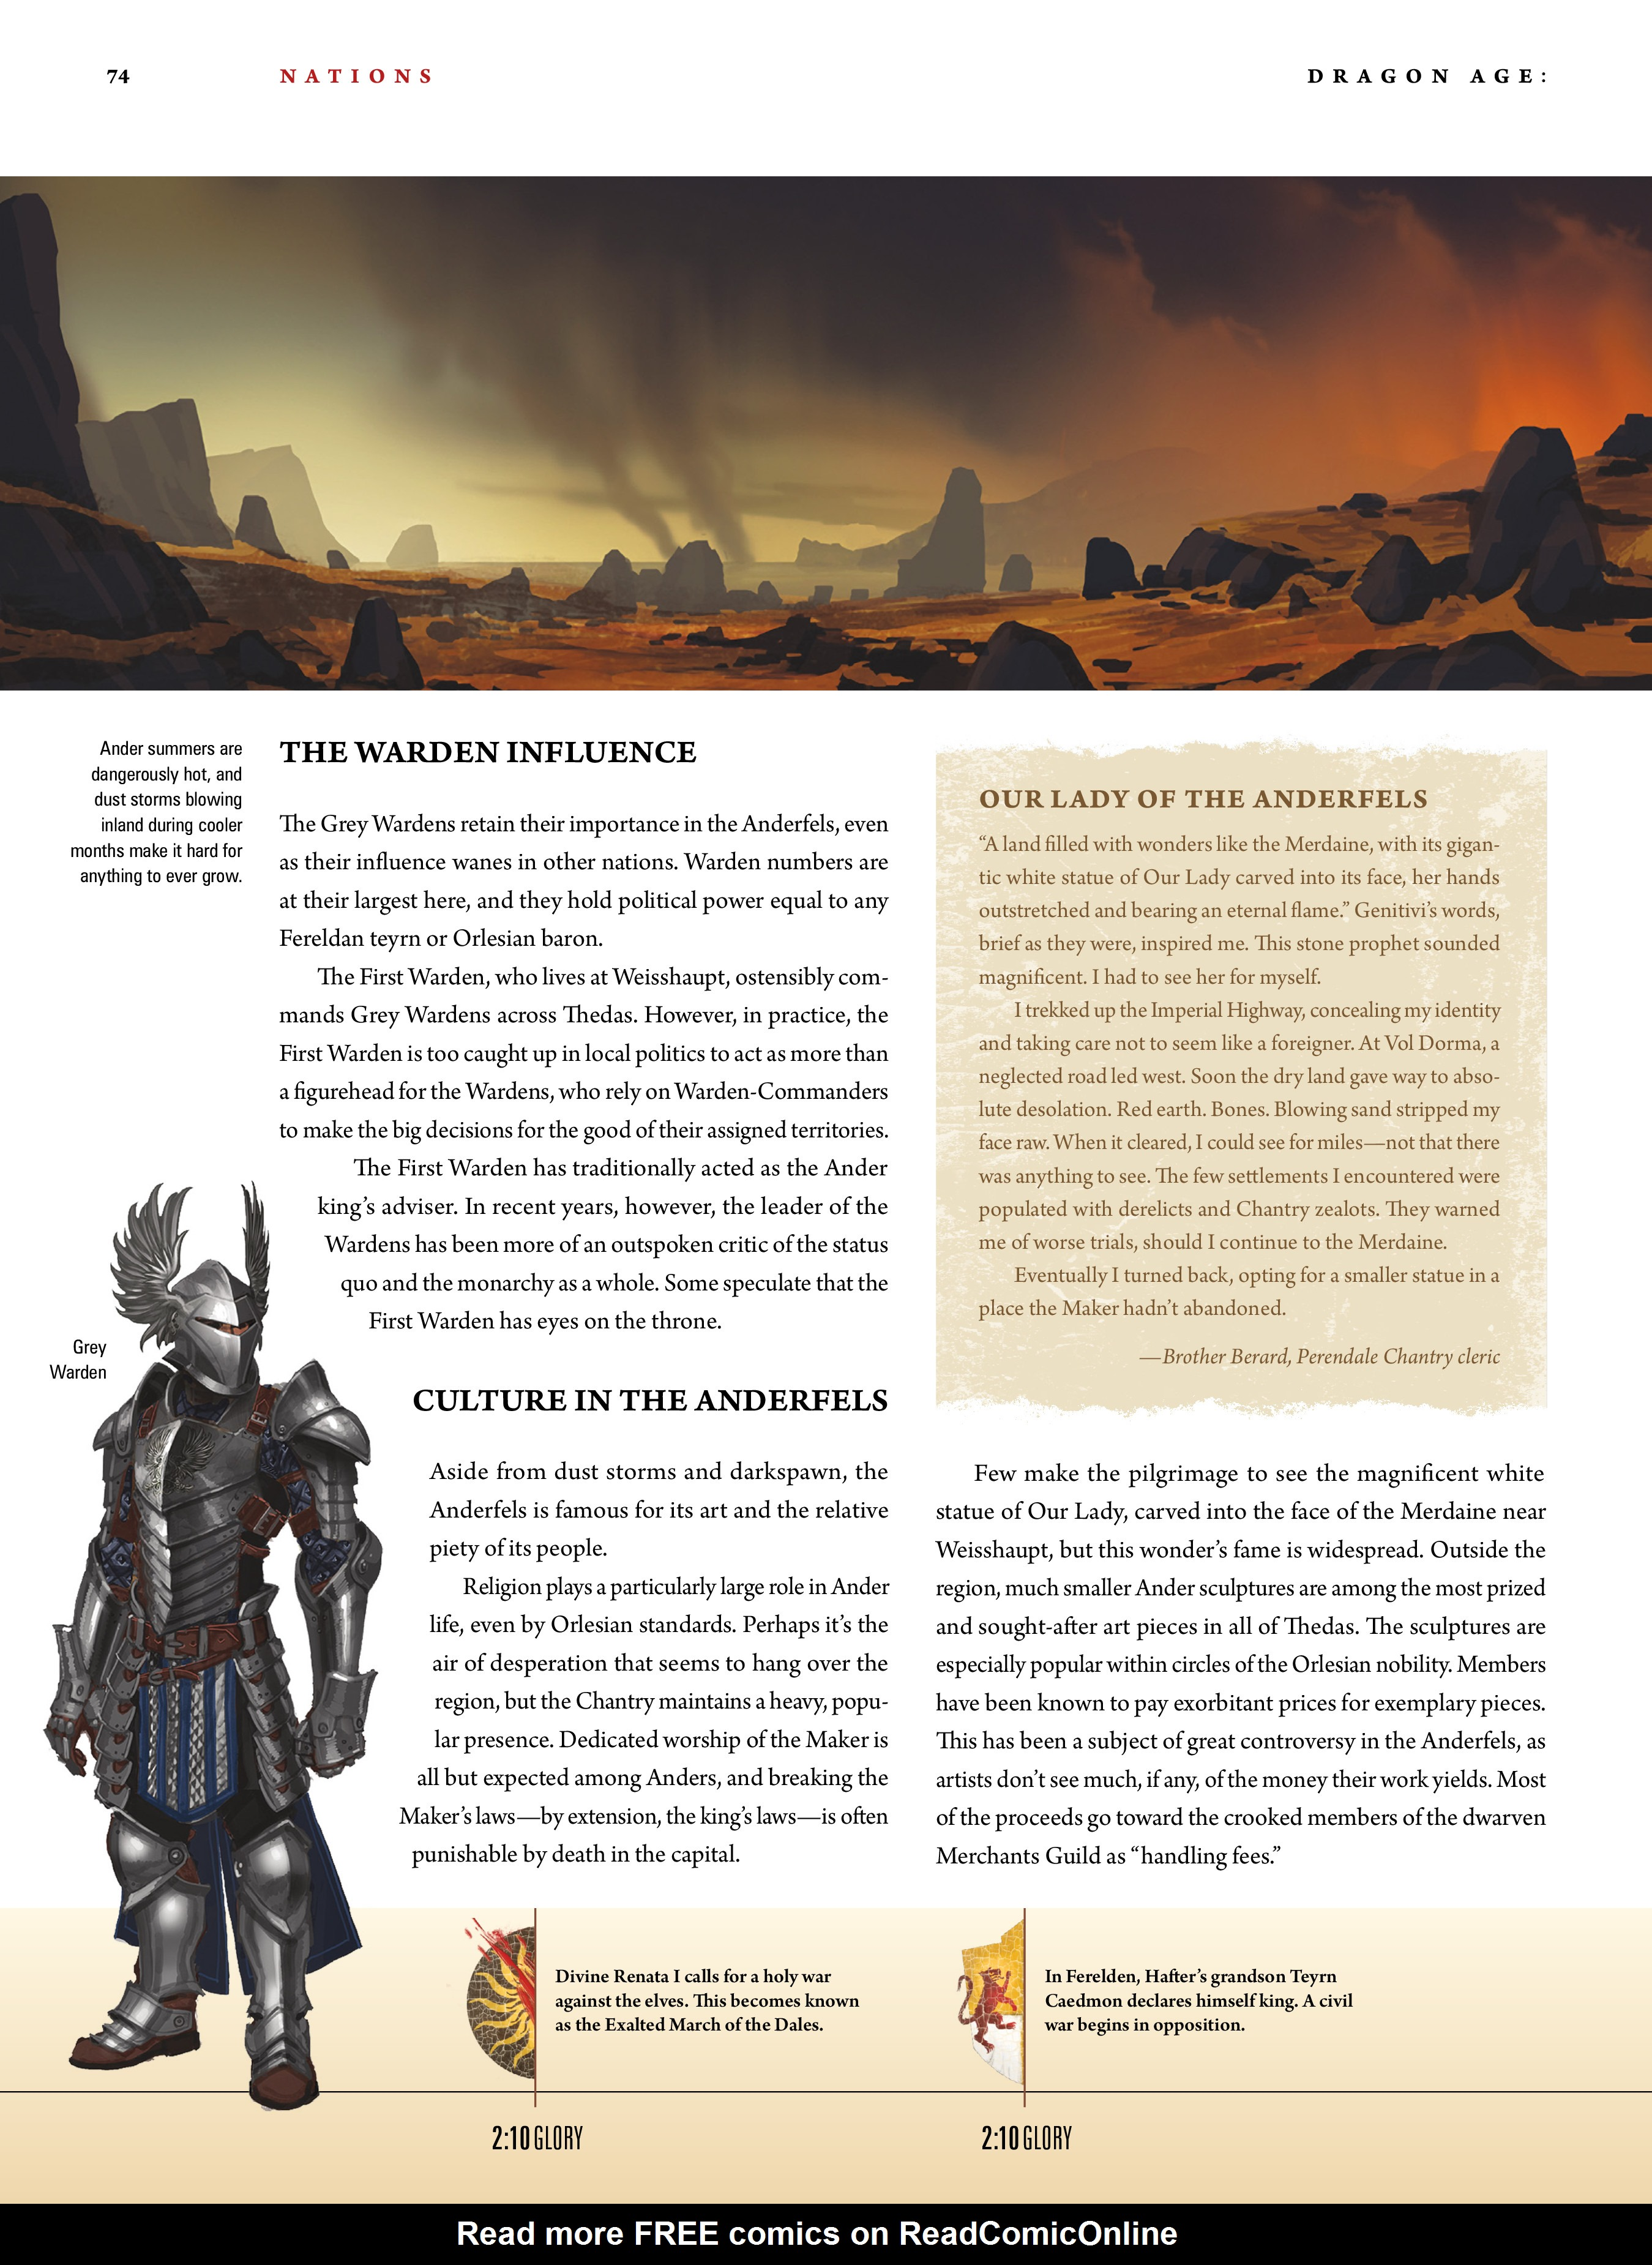 Read online Dragon Age: The World of Thedas comic -  Issue # TPB 1 - 60